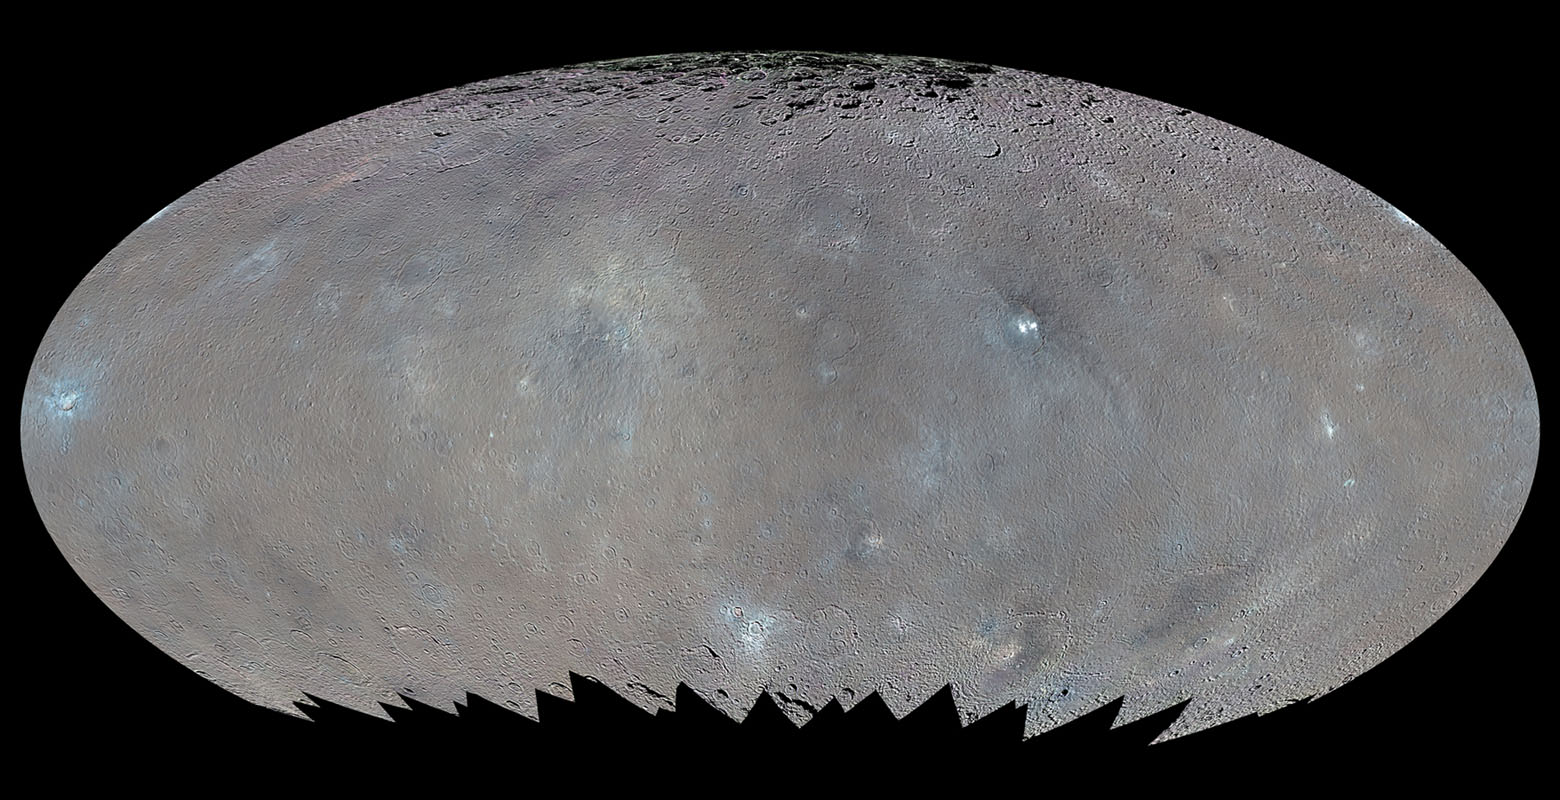 This global map elliptical map from NASA's Dawn spacecraft shows the surface of Ceres in enhanced color, encompassing infrared wavelengths beyond human visual range. Some areas near the poles are black where Dawn's color imaging coverage is incomplete.